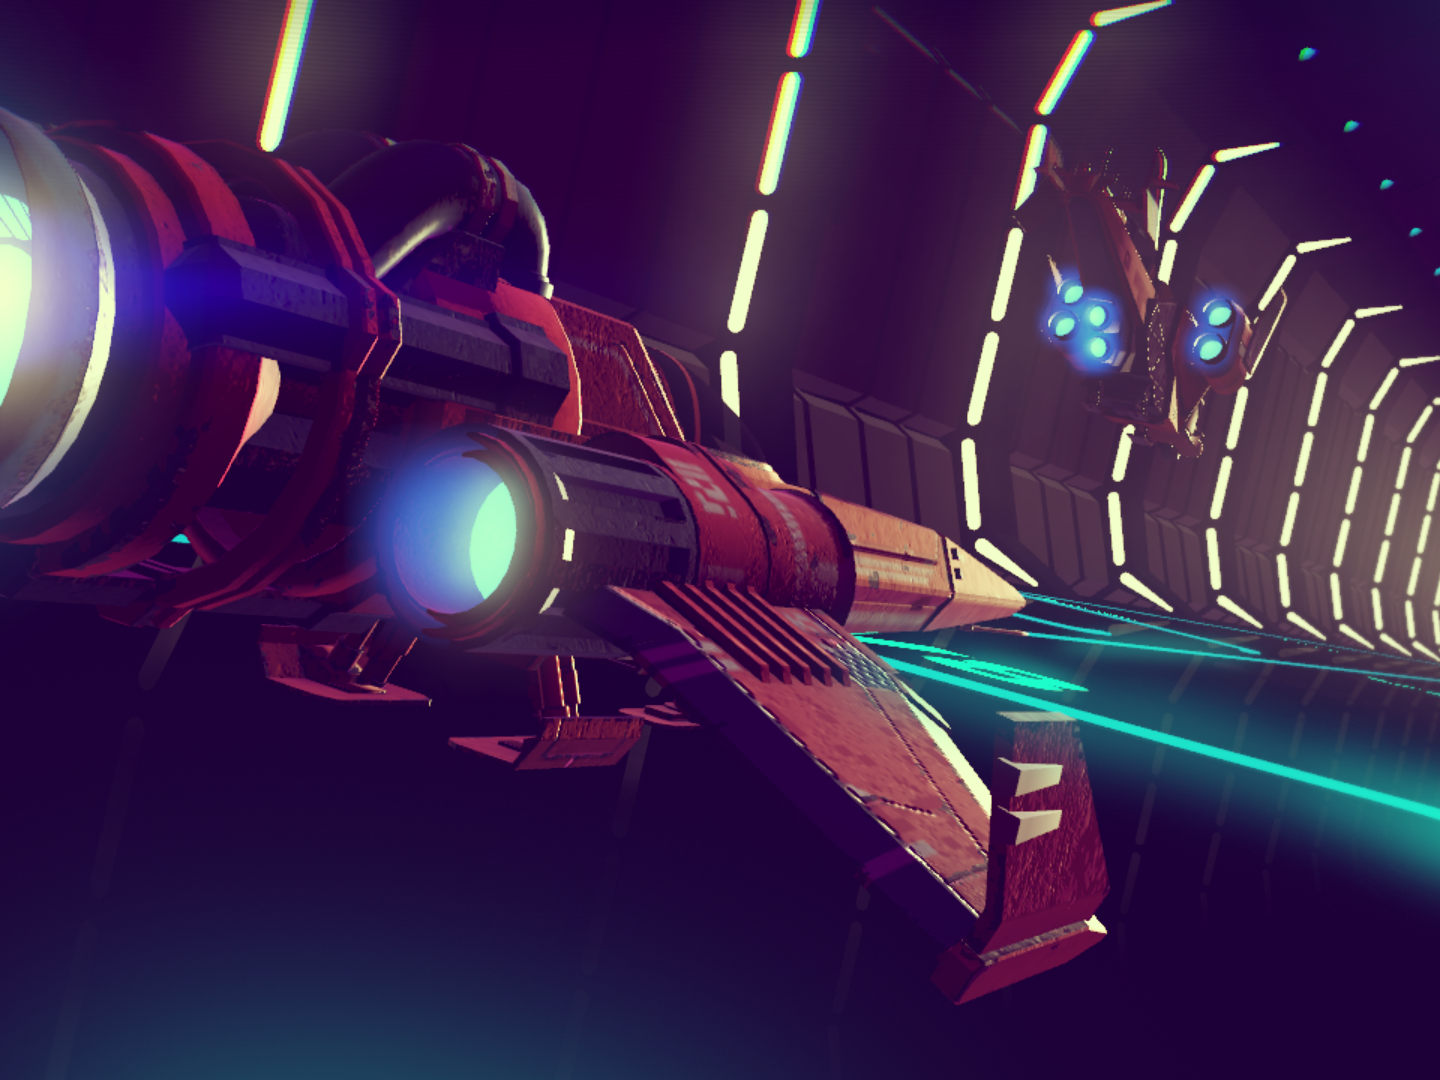 How to Fix Your Starting Ship in 'No Man's Sky'